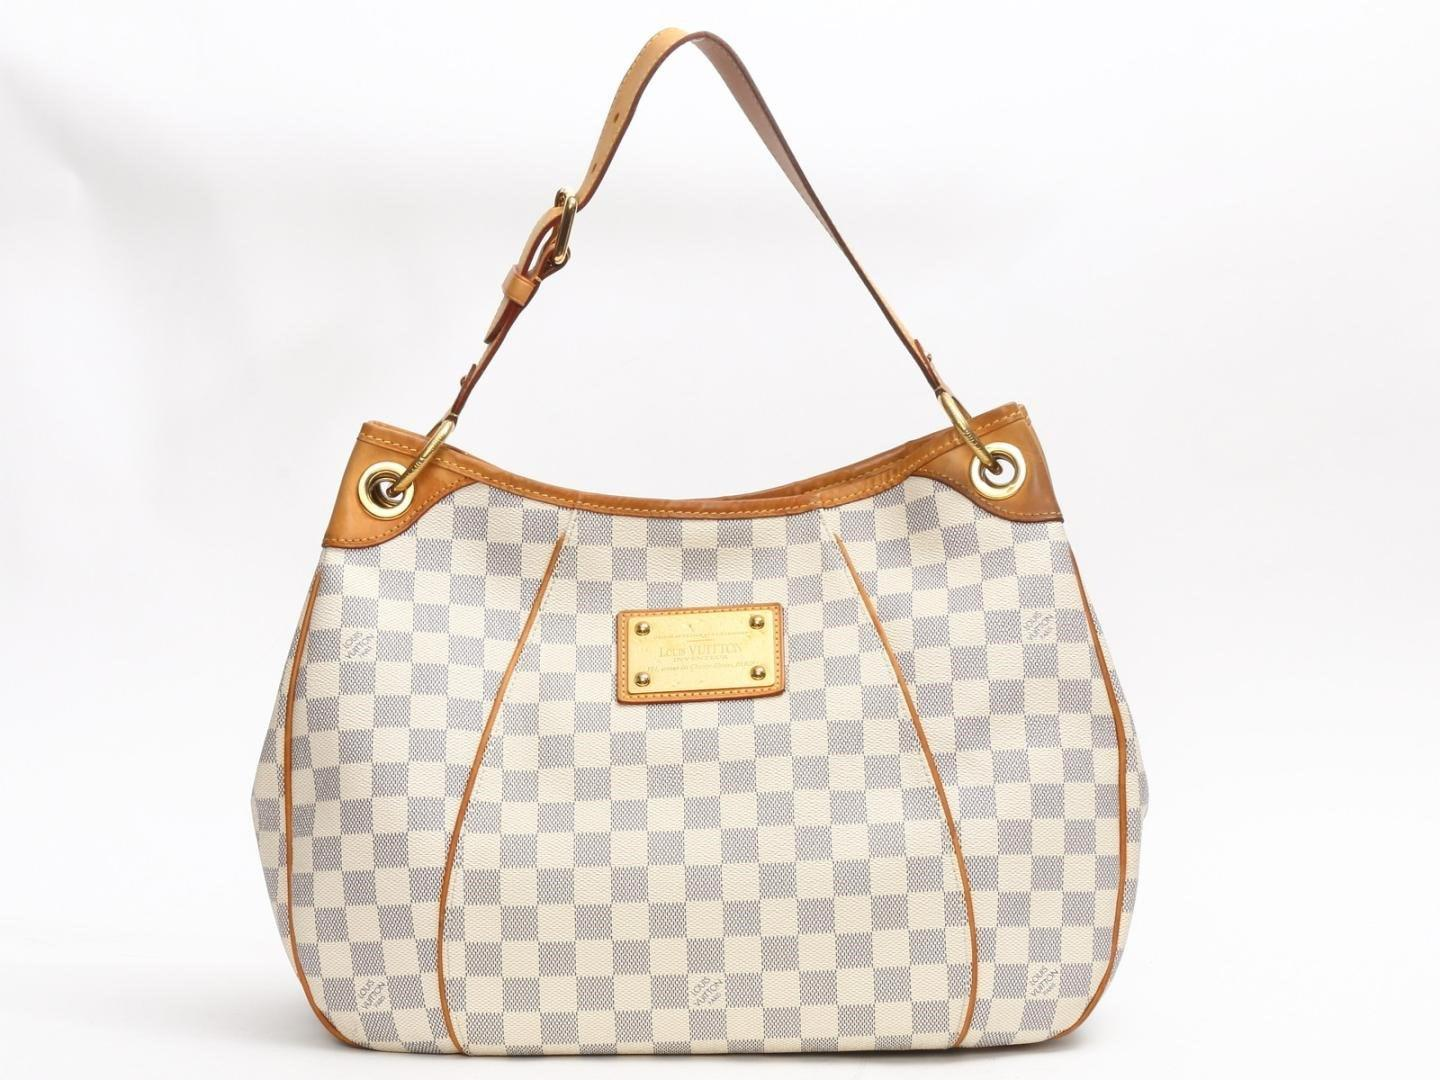 Lyst - Louis Vuitton Galliera Pm Shoulder Bag Damier Azur N55215 in ... 225d8c97b0856